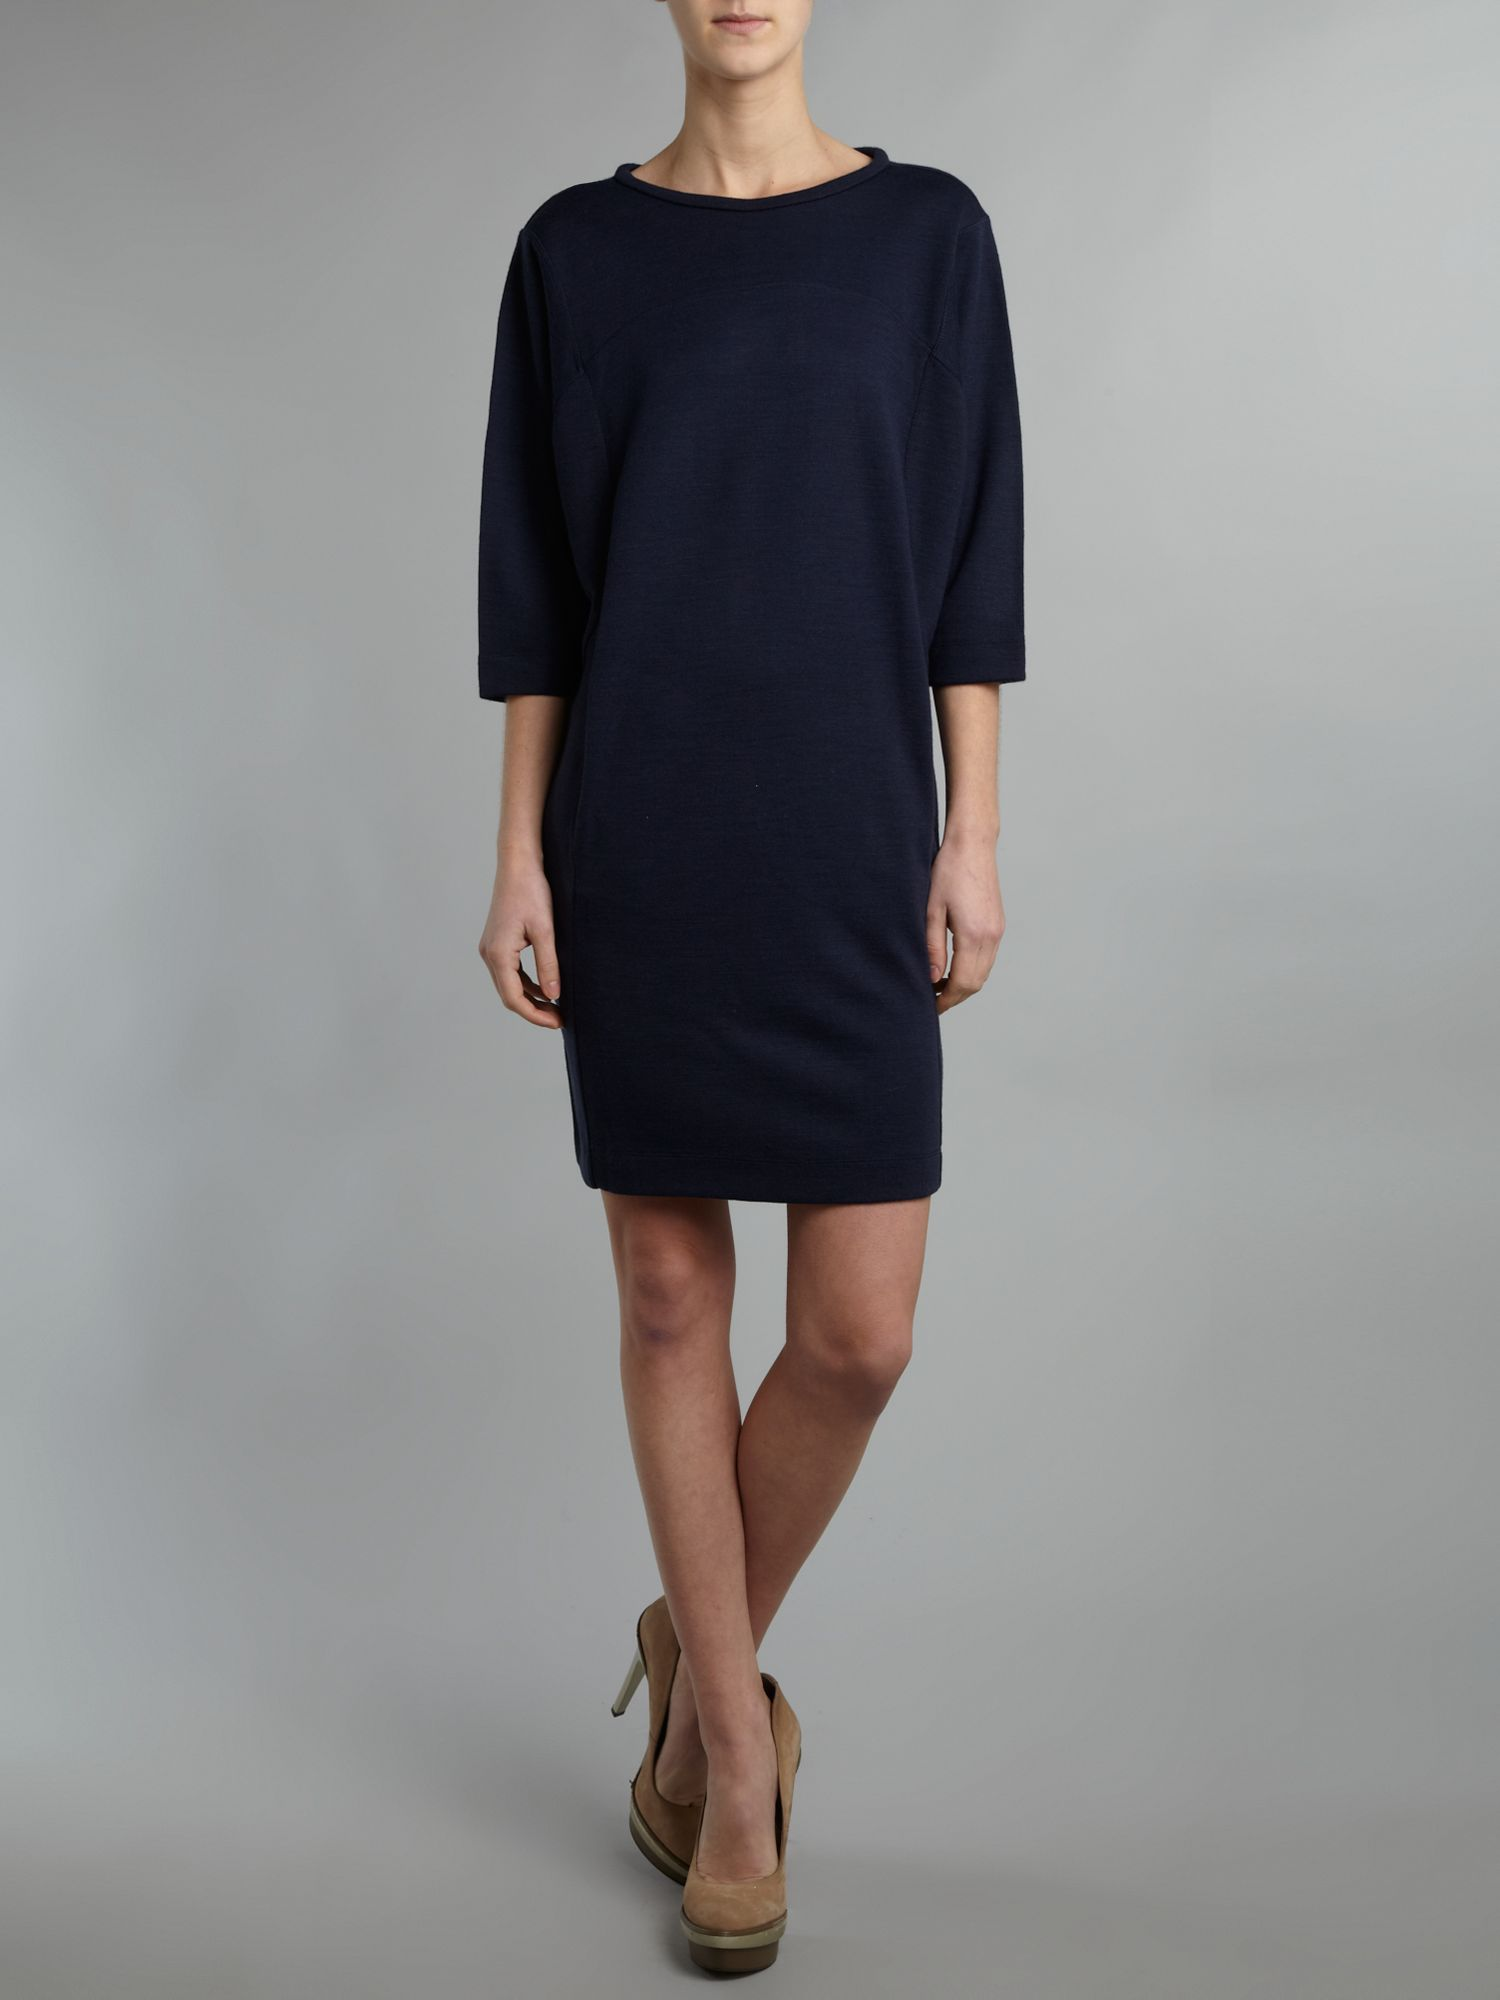 Delilah milano stitch dress